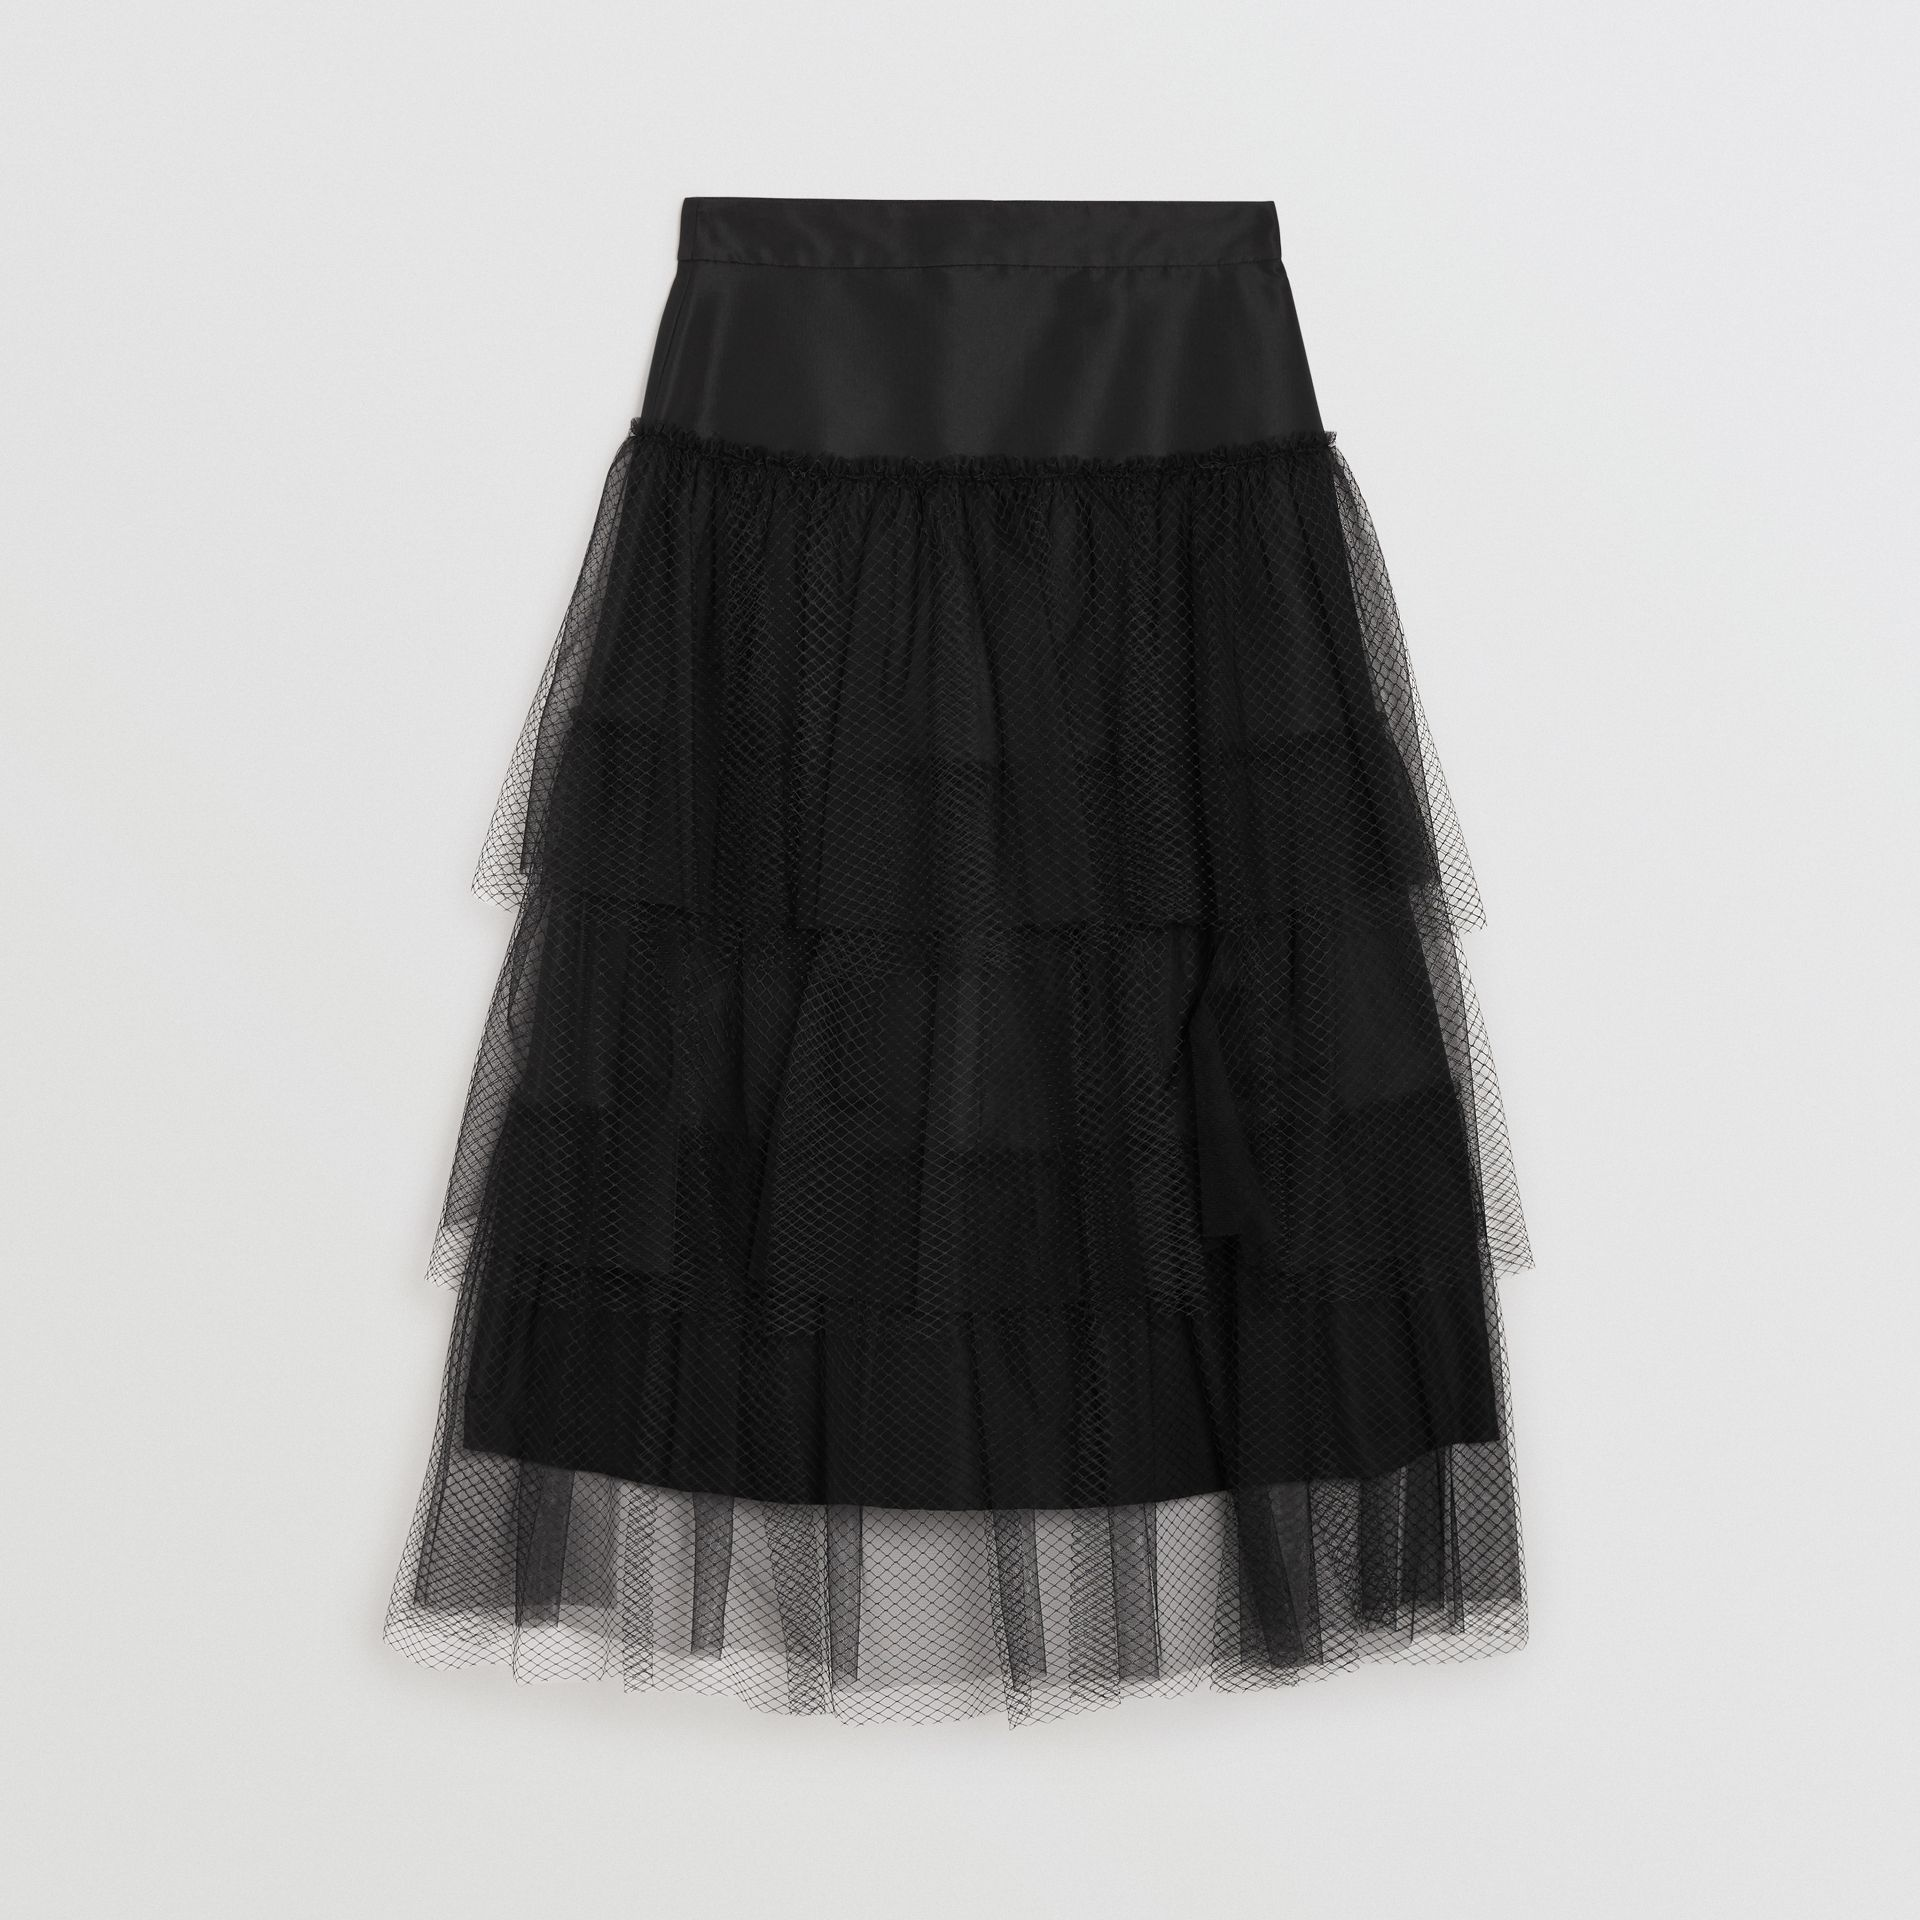 Tiered Tulle A-line Skirt in Black - Women | Burberry Canada - gallery image 3